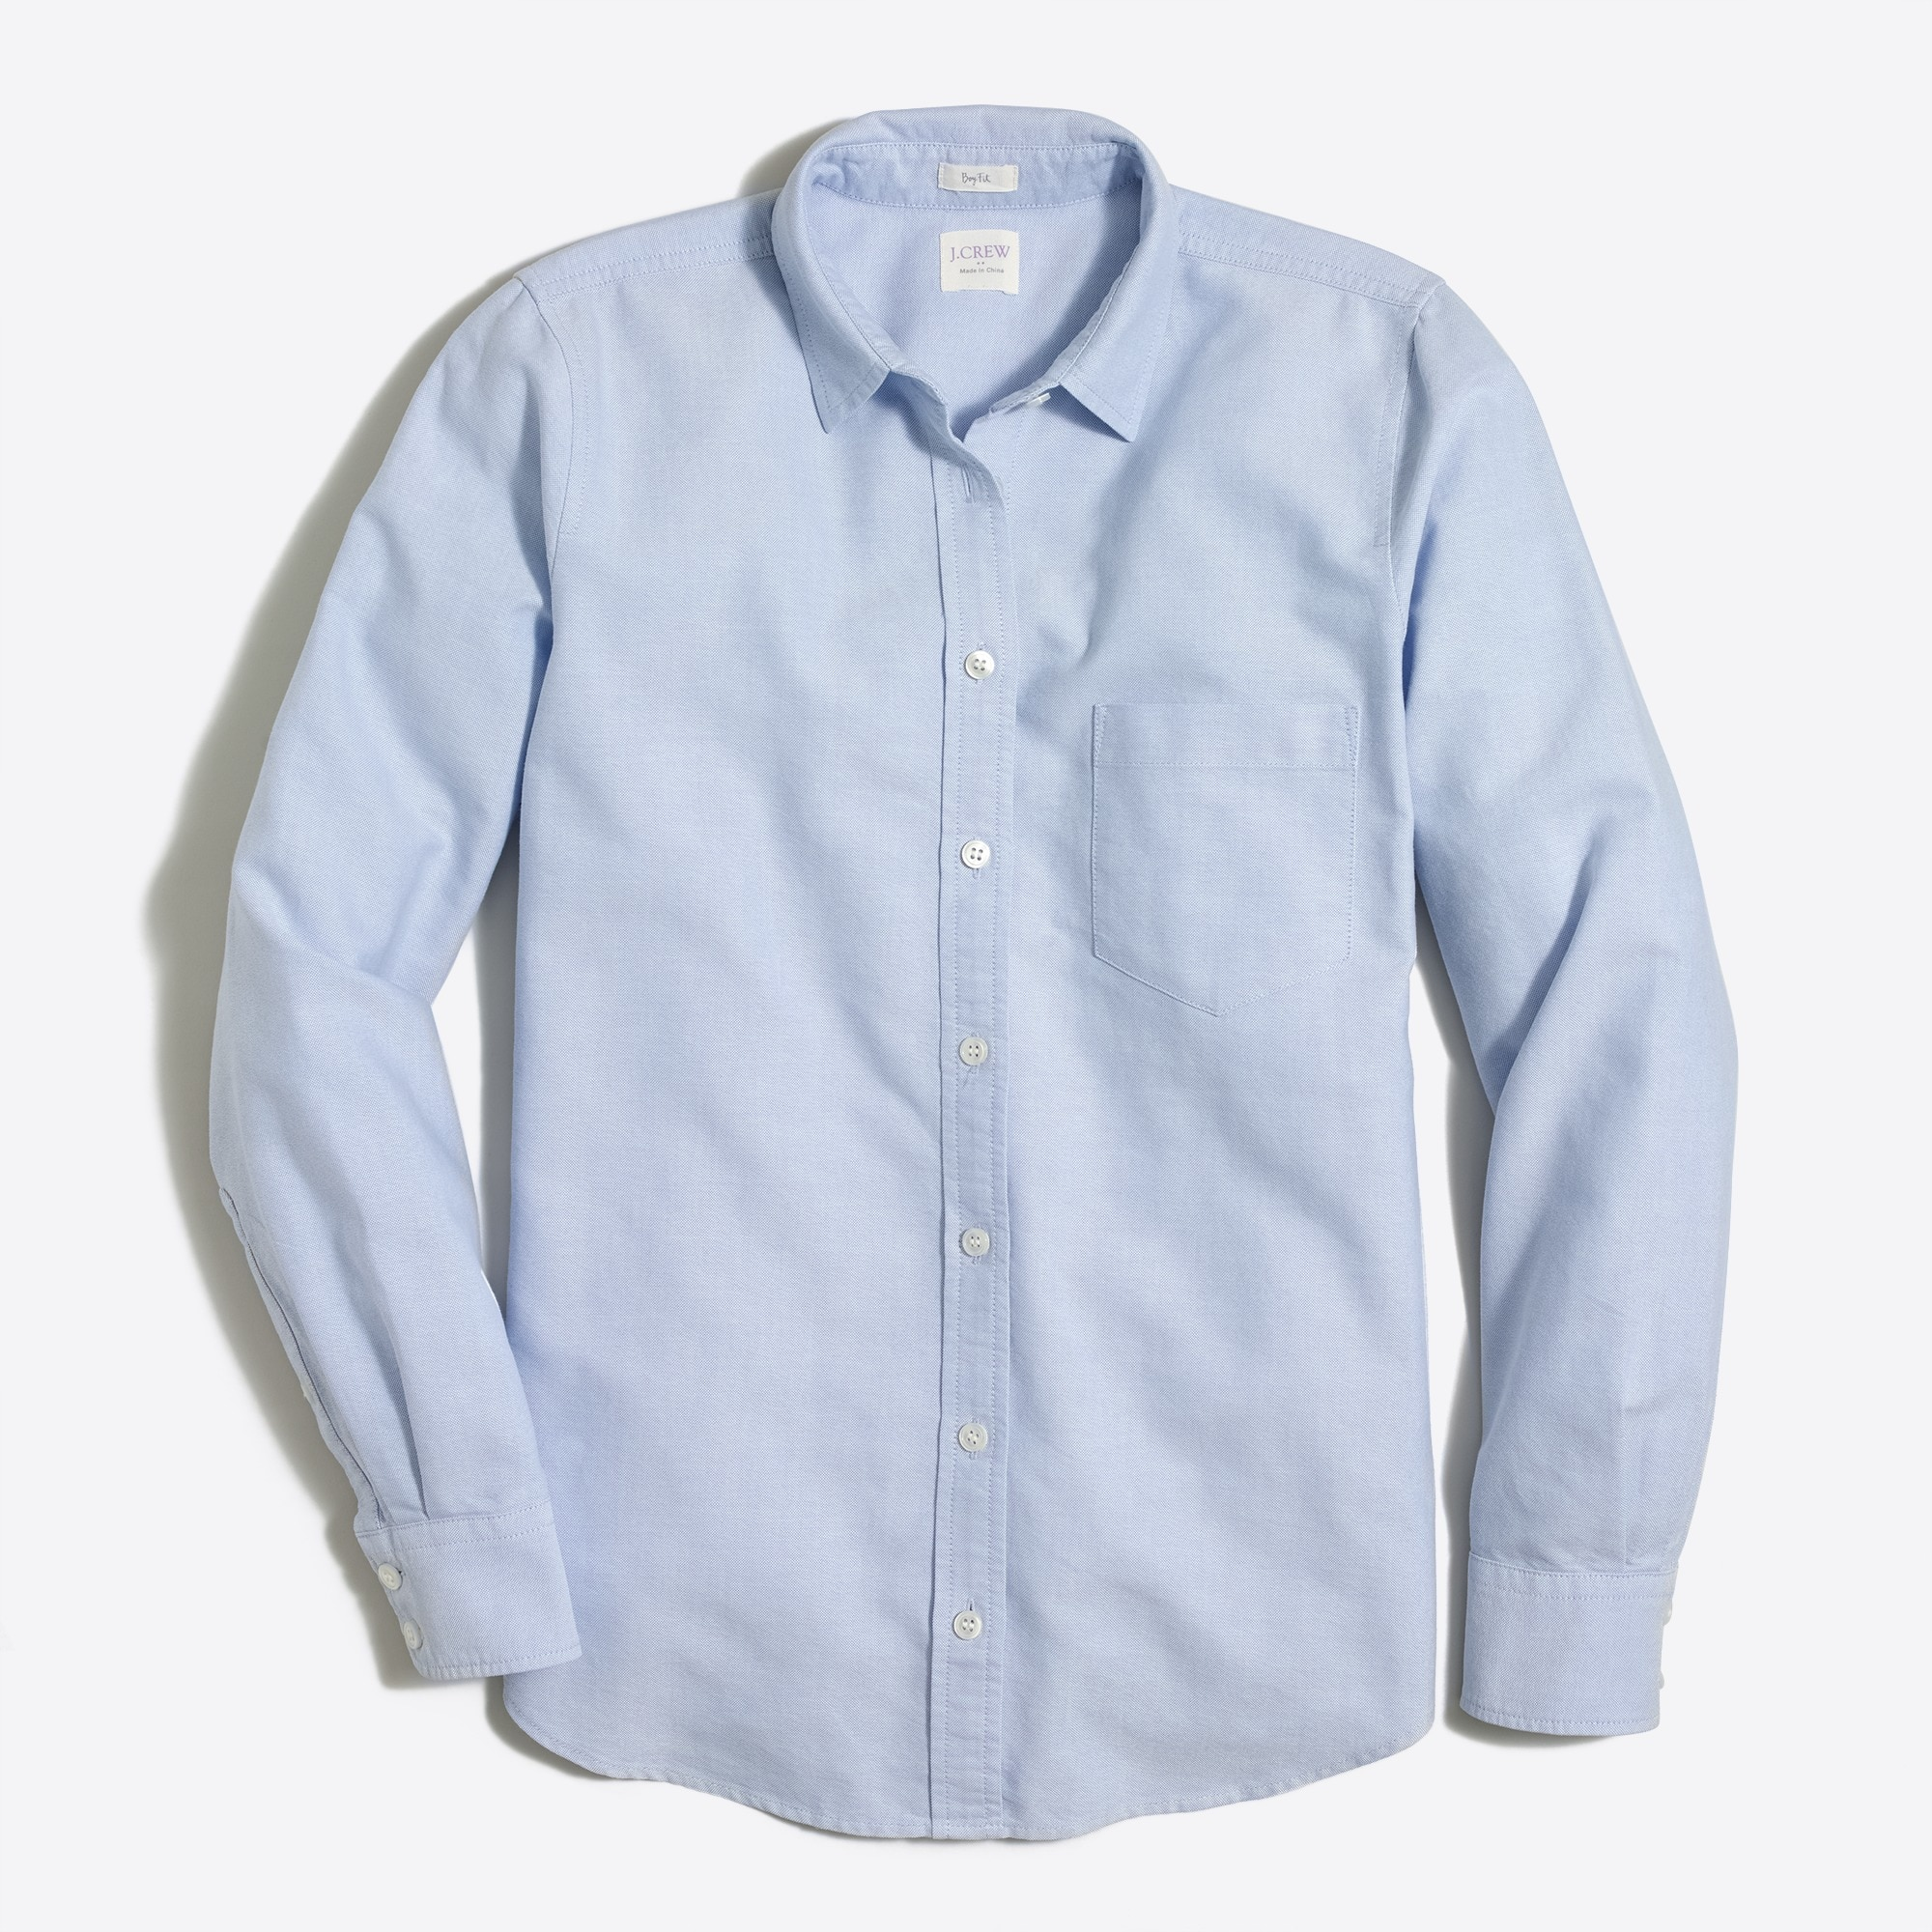 Image 2 for J.Crew Mercantile Oxford shirt